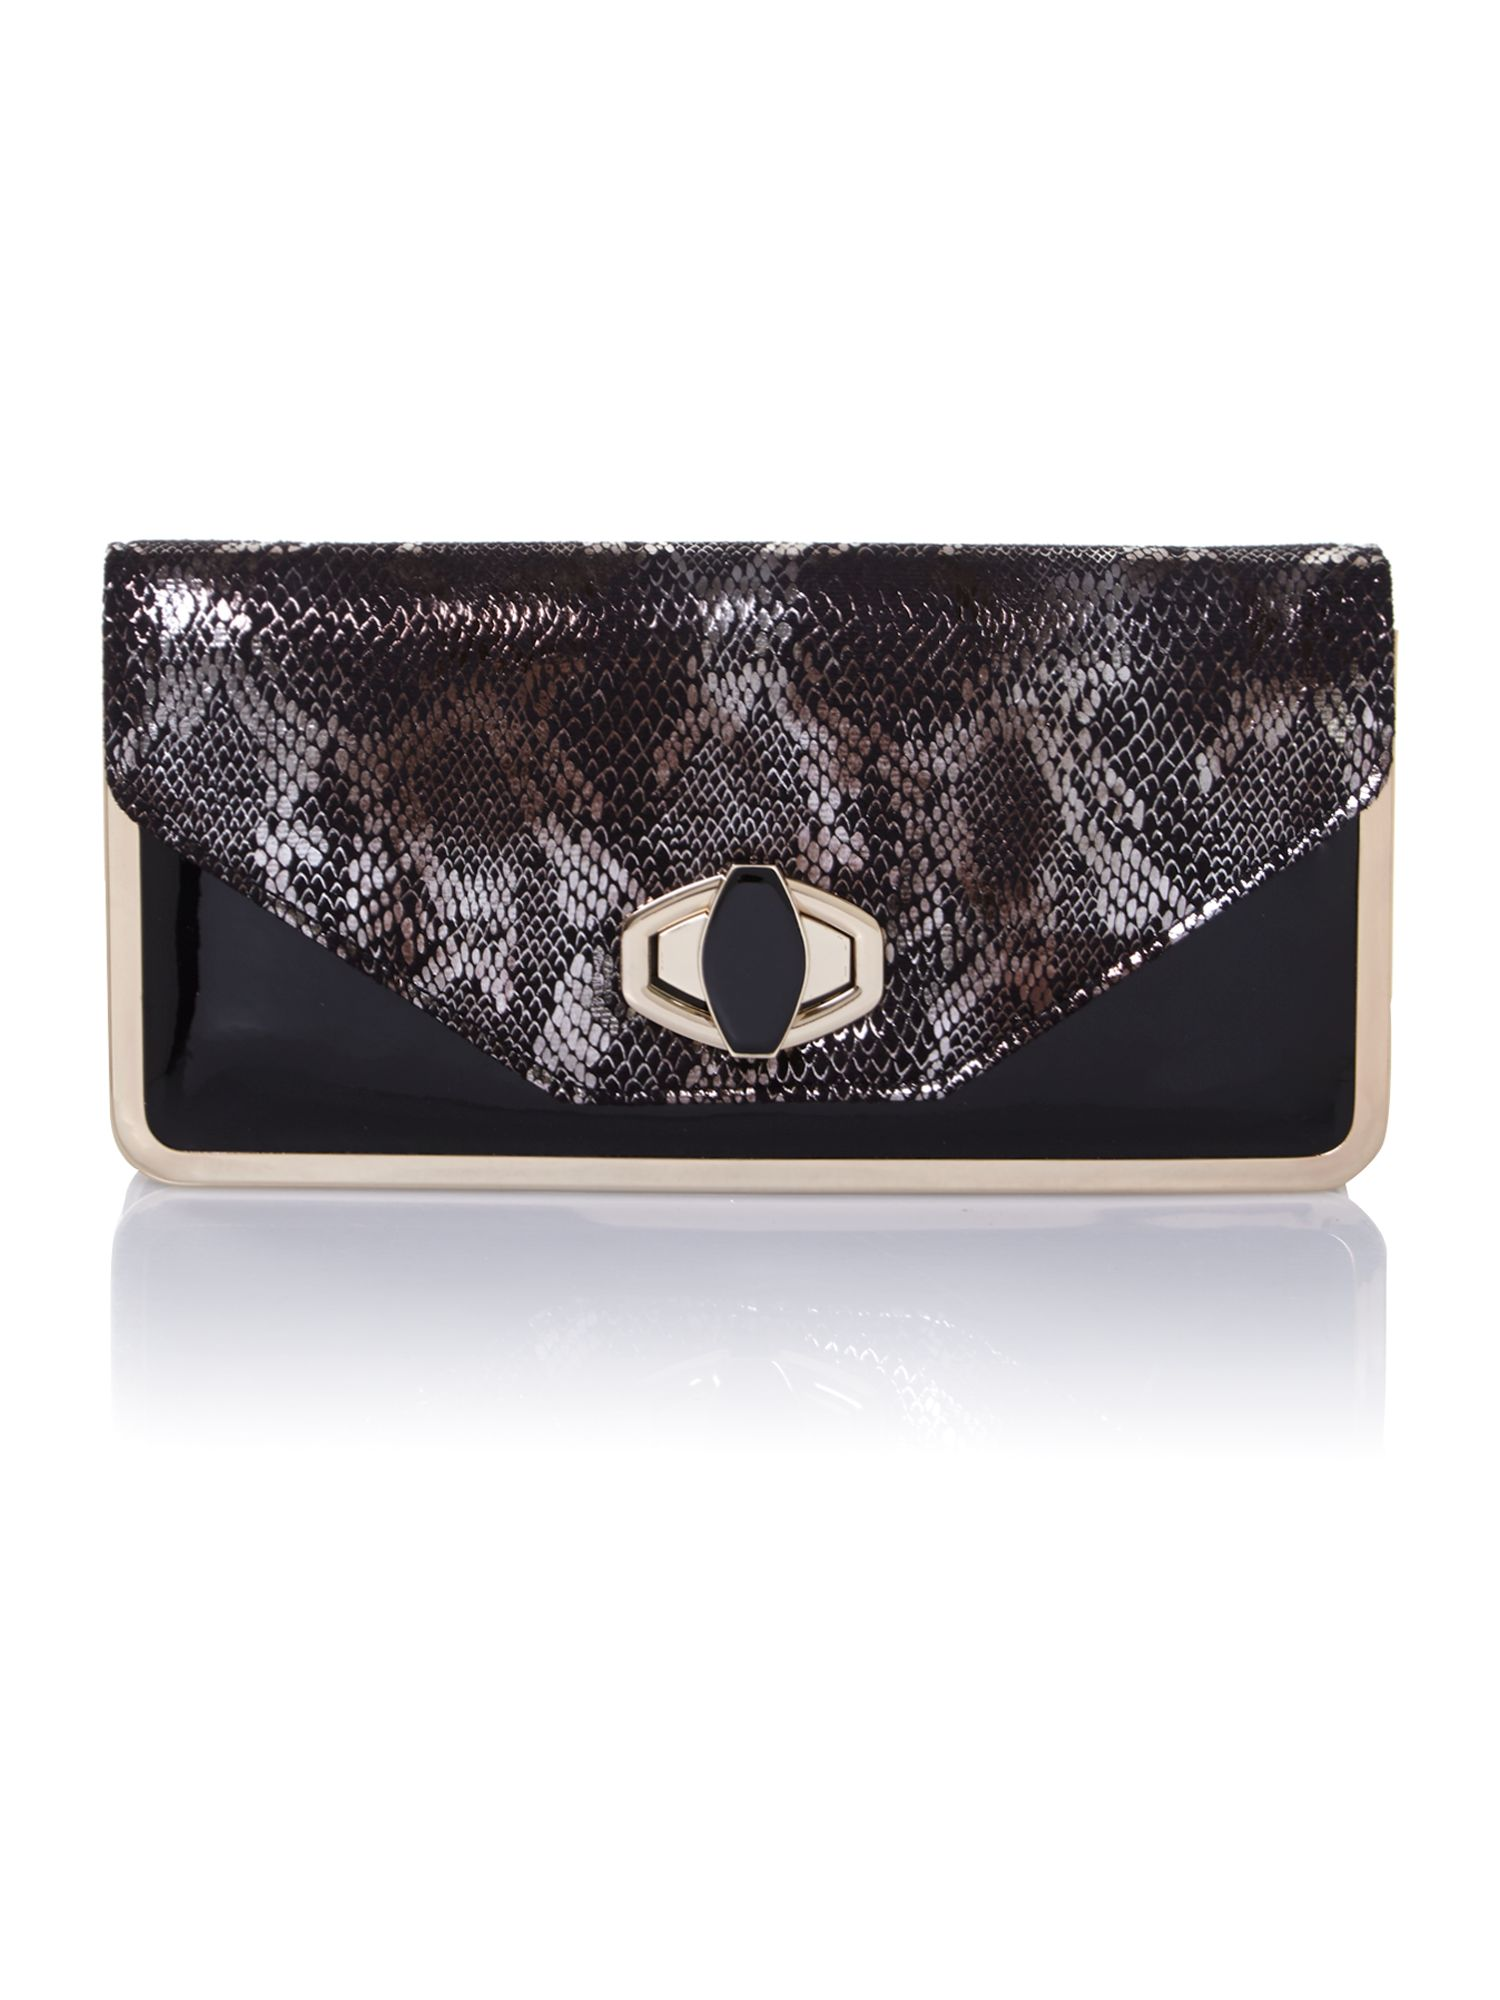 Metallic snake clutch bag